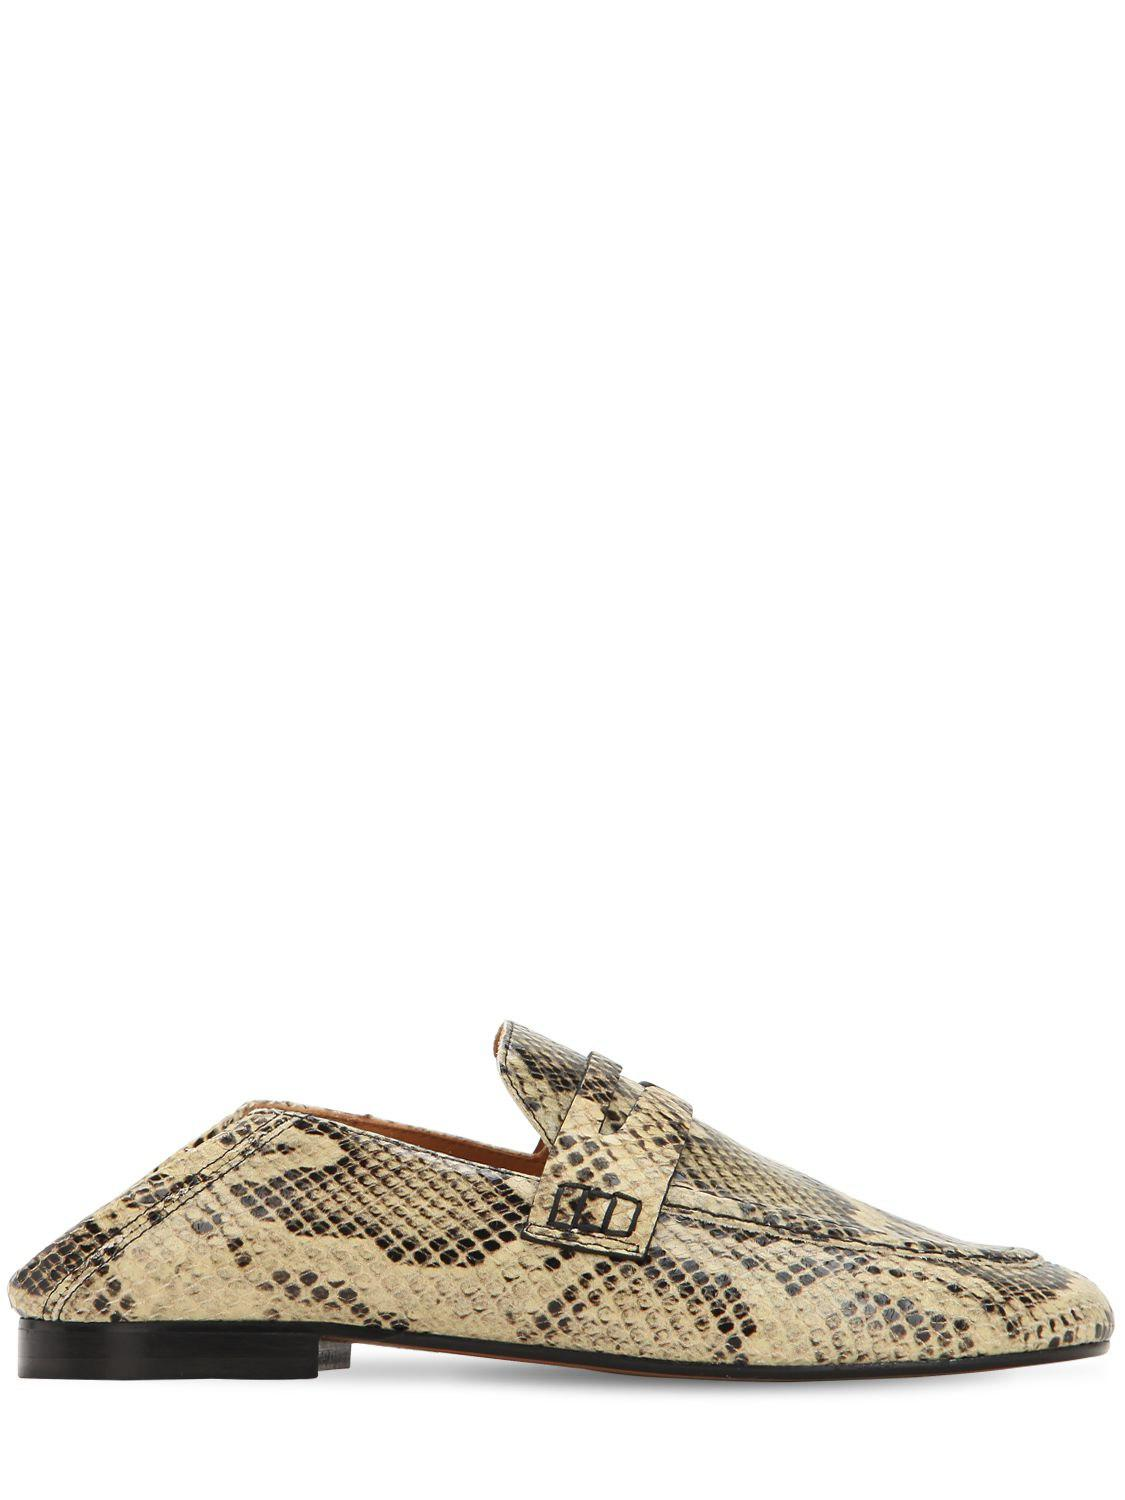 3c48277ede7 Lyst - Isabel Marant 10mm Fezzy Python Printed Penny Loafers in Natural